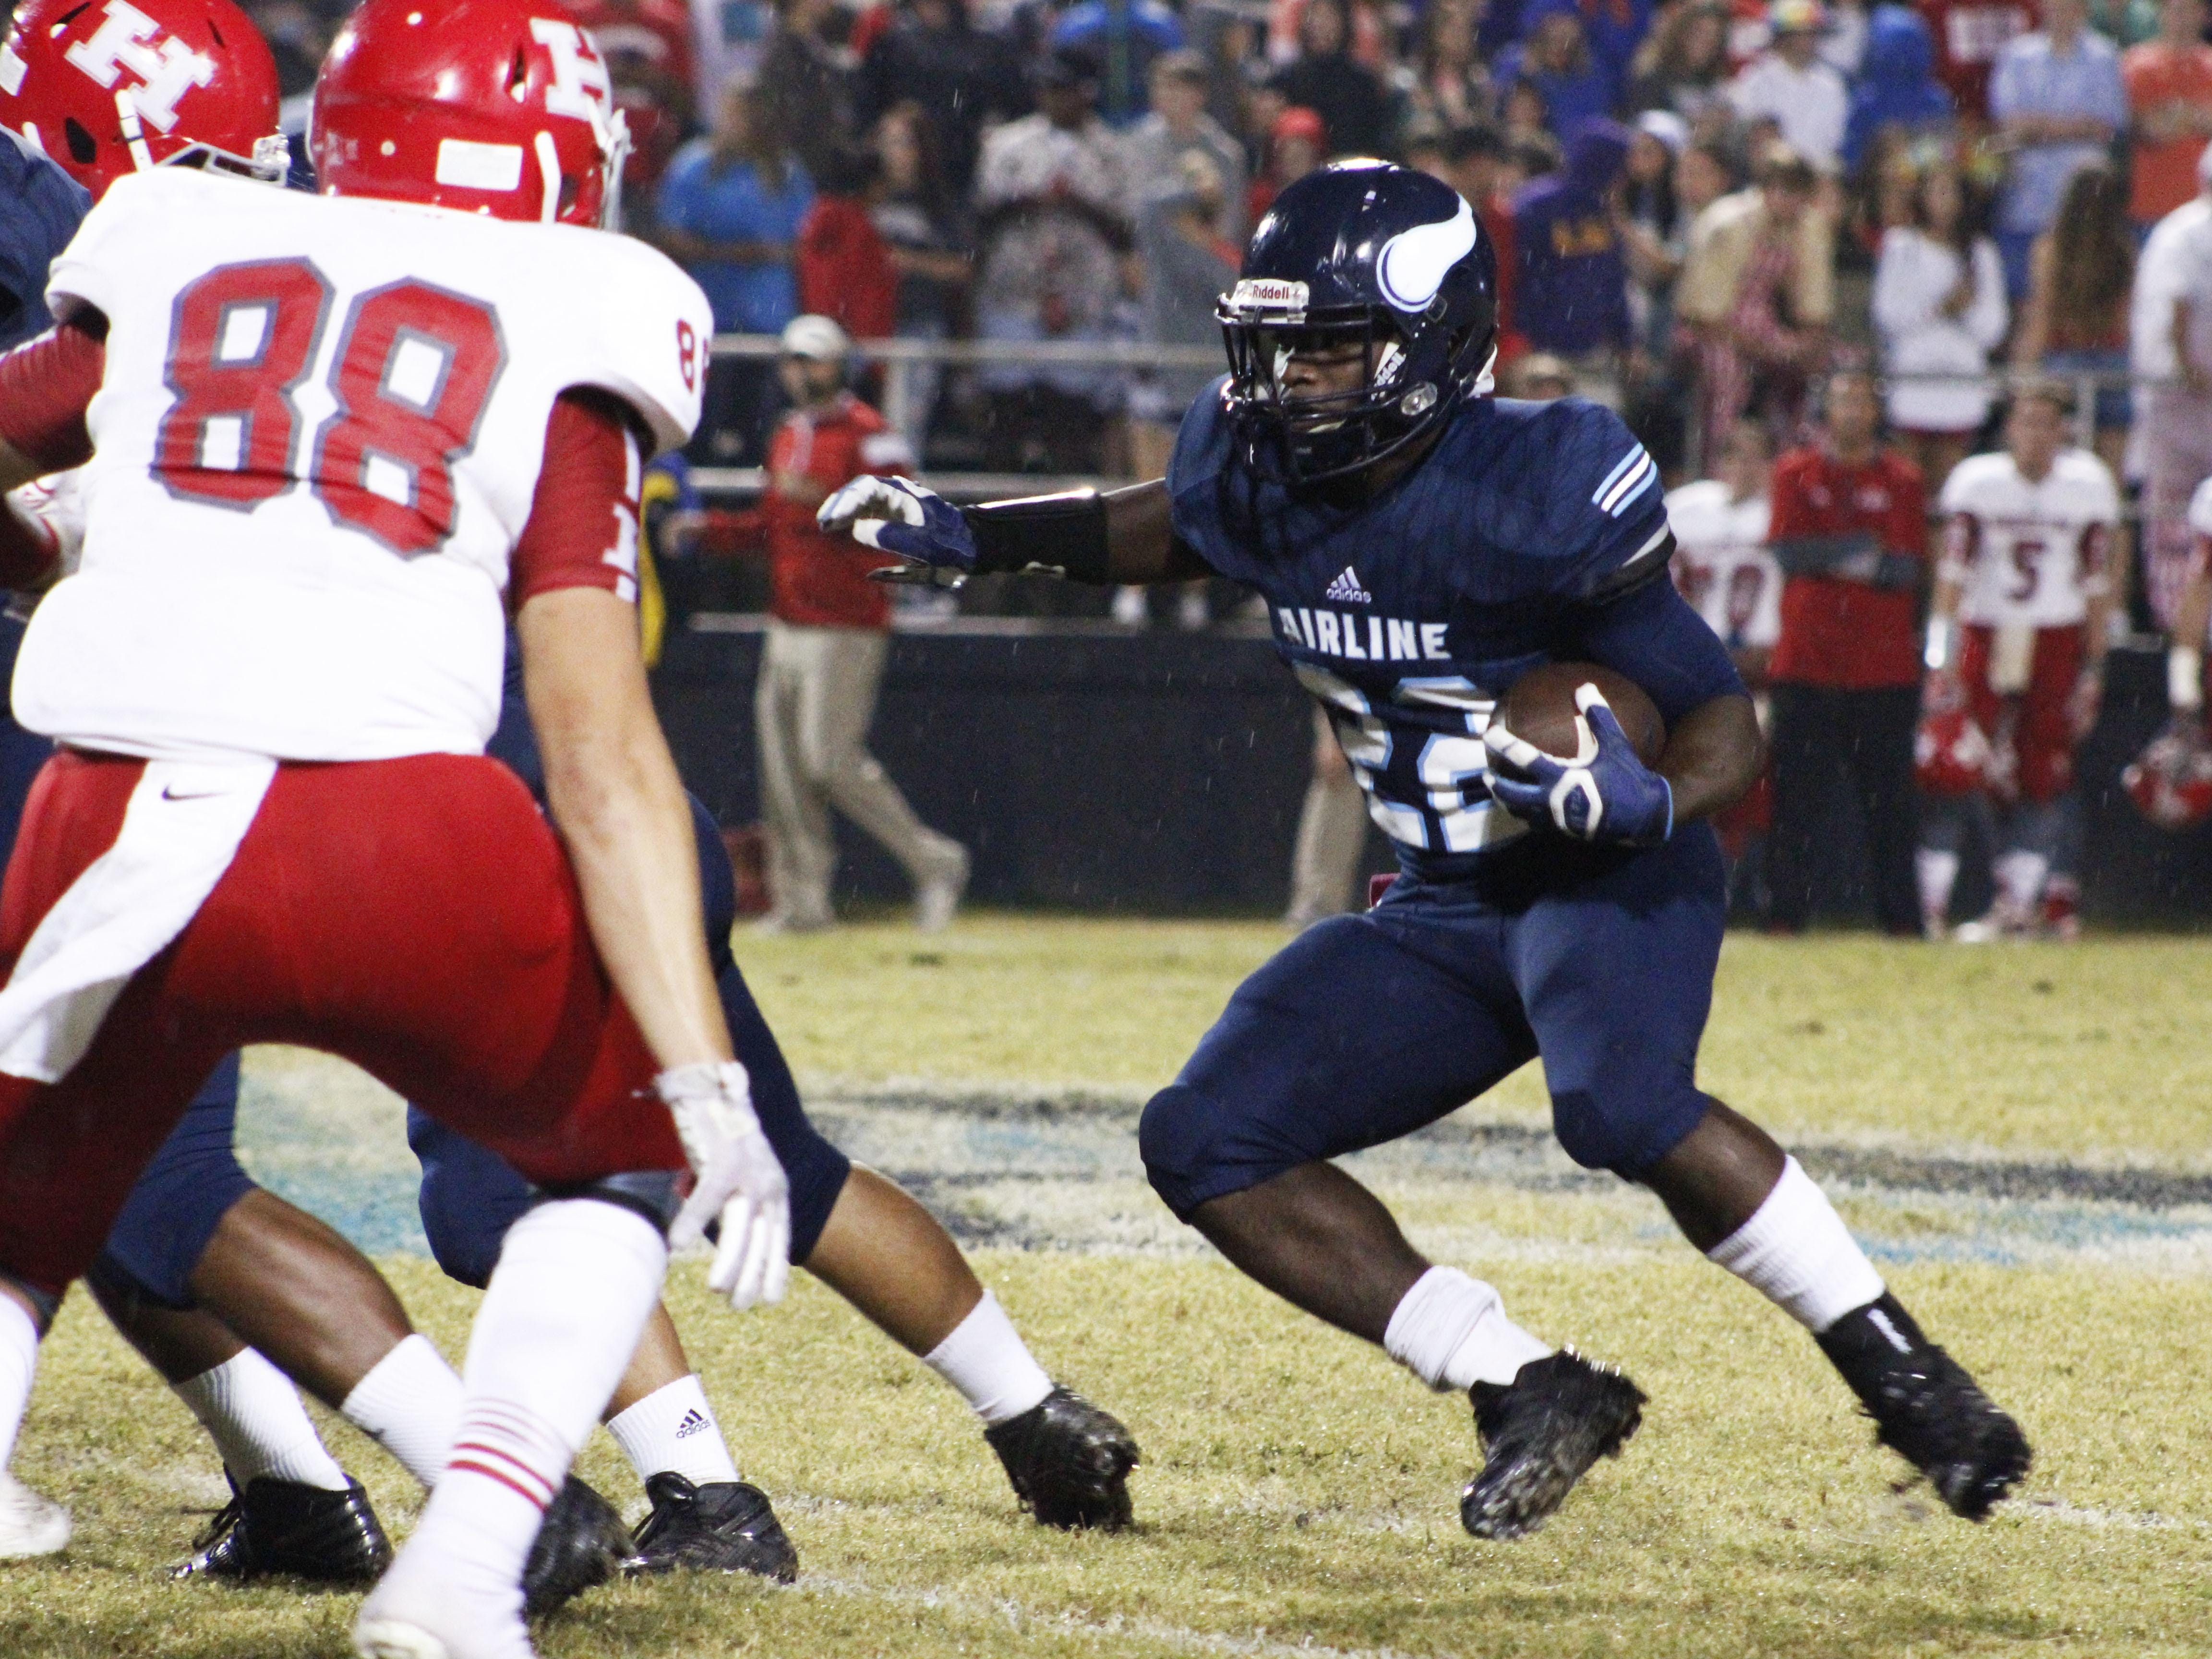 Airline's Brian Fielding makes a move against Haughton's defense Friday night at Airline High in Bossier City.